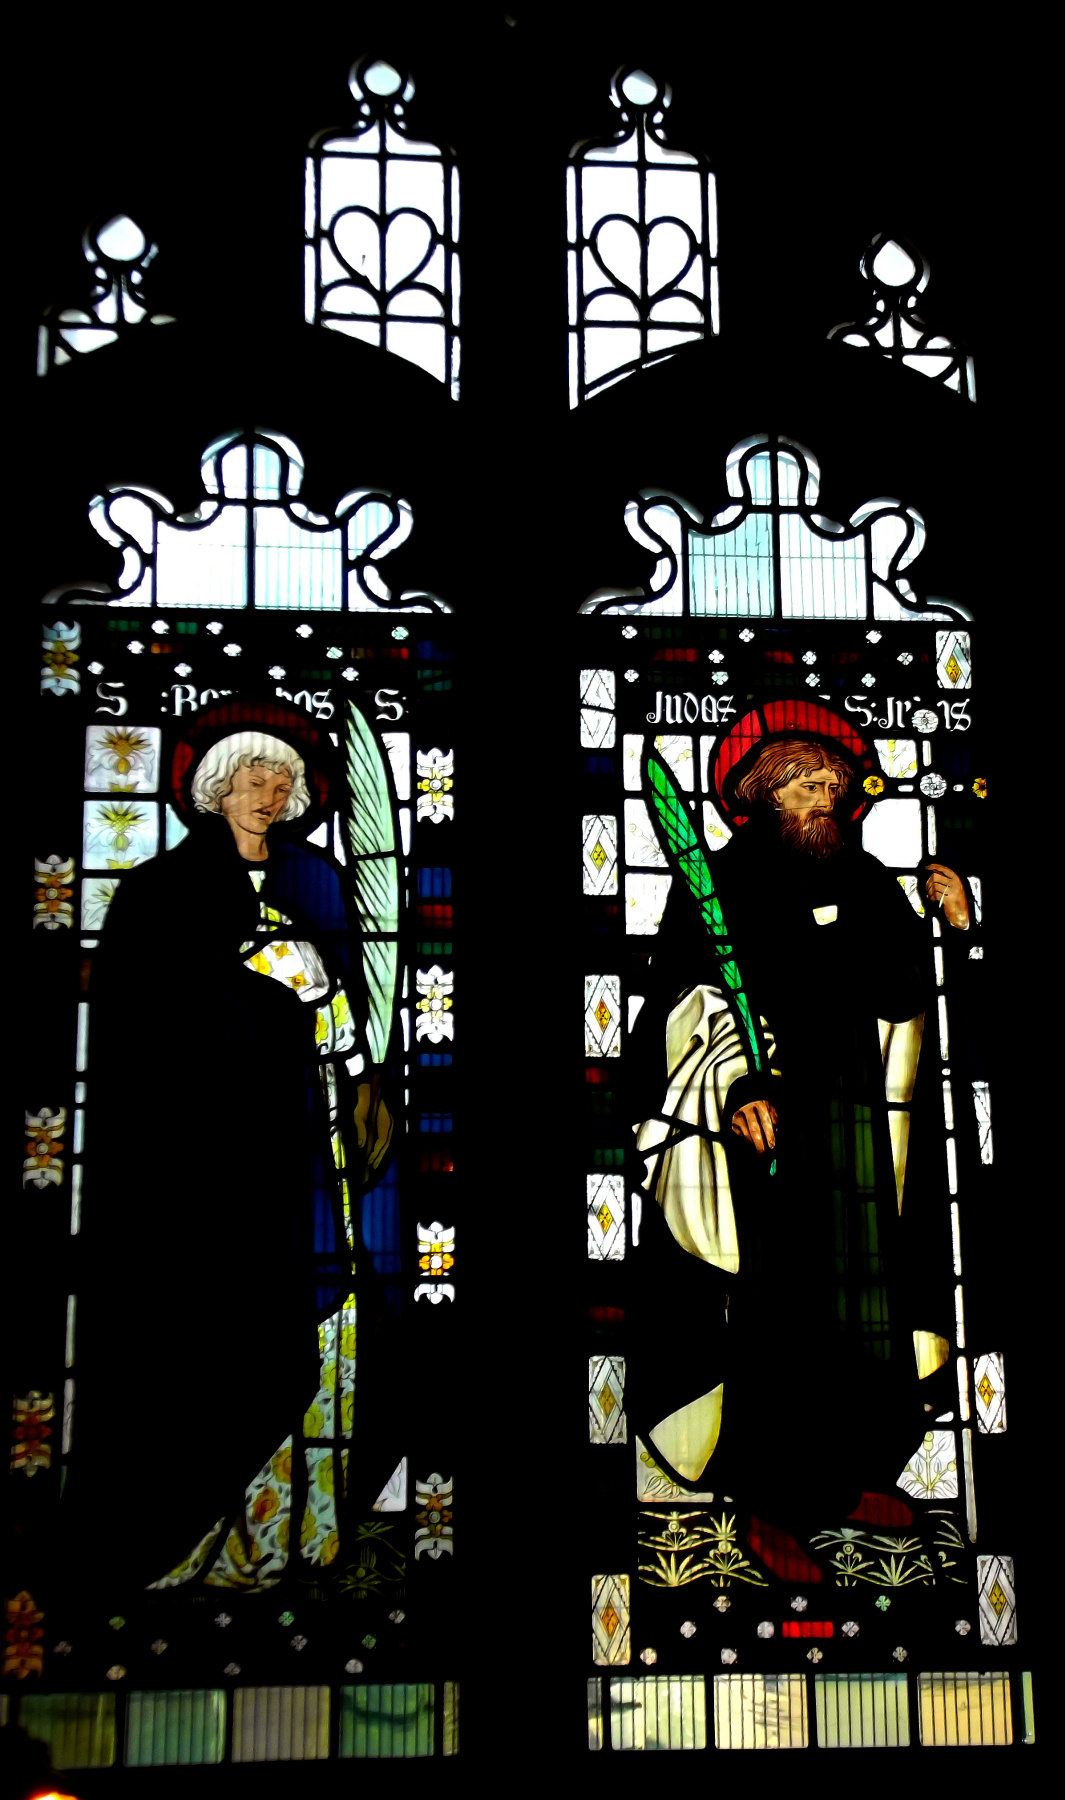 William Morris. Stained glass in the Cathedral of Bradford, on Stott Hill, Bradford, West Yorkshire, England